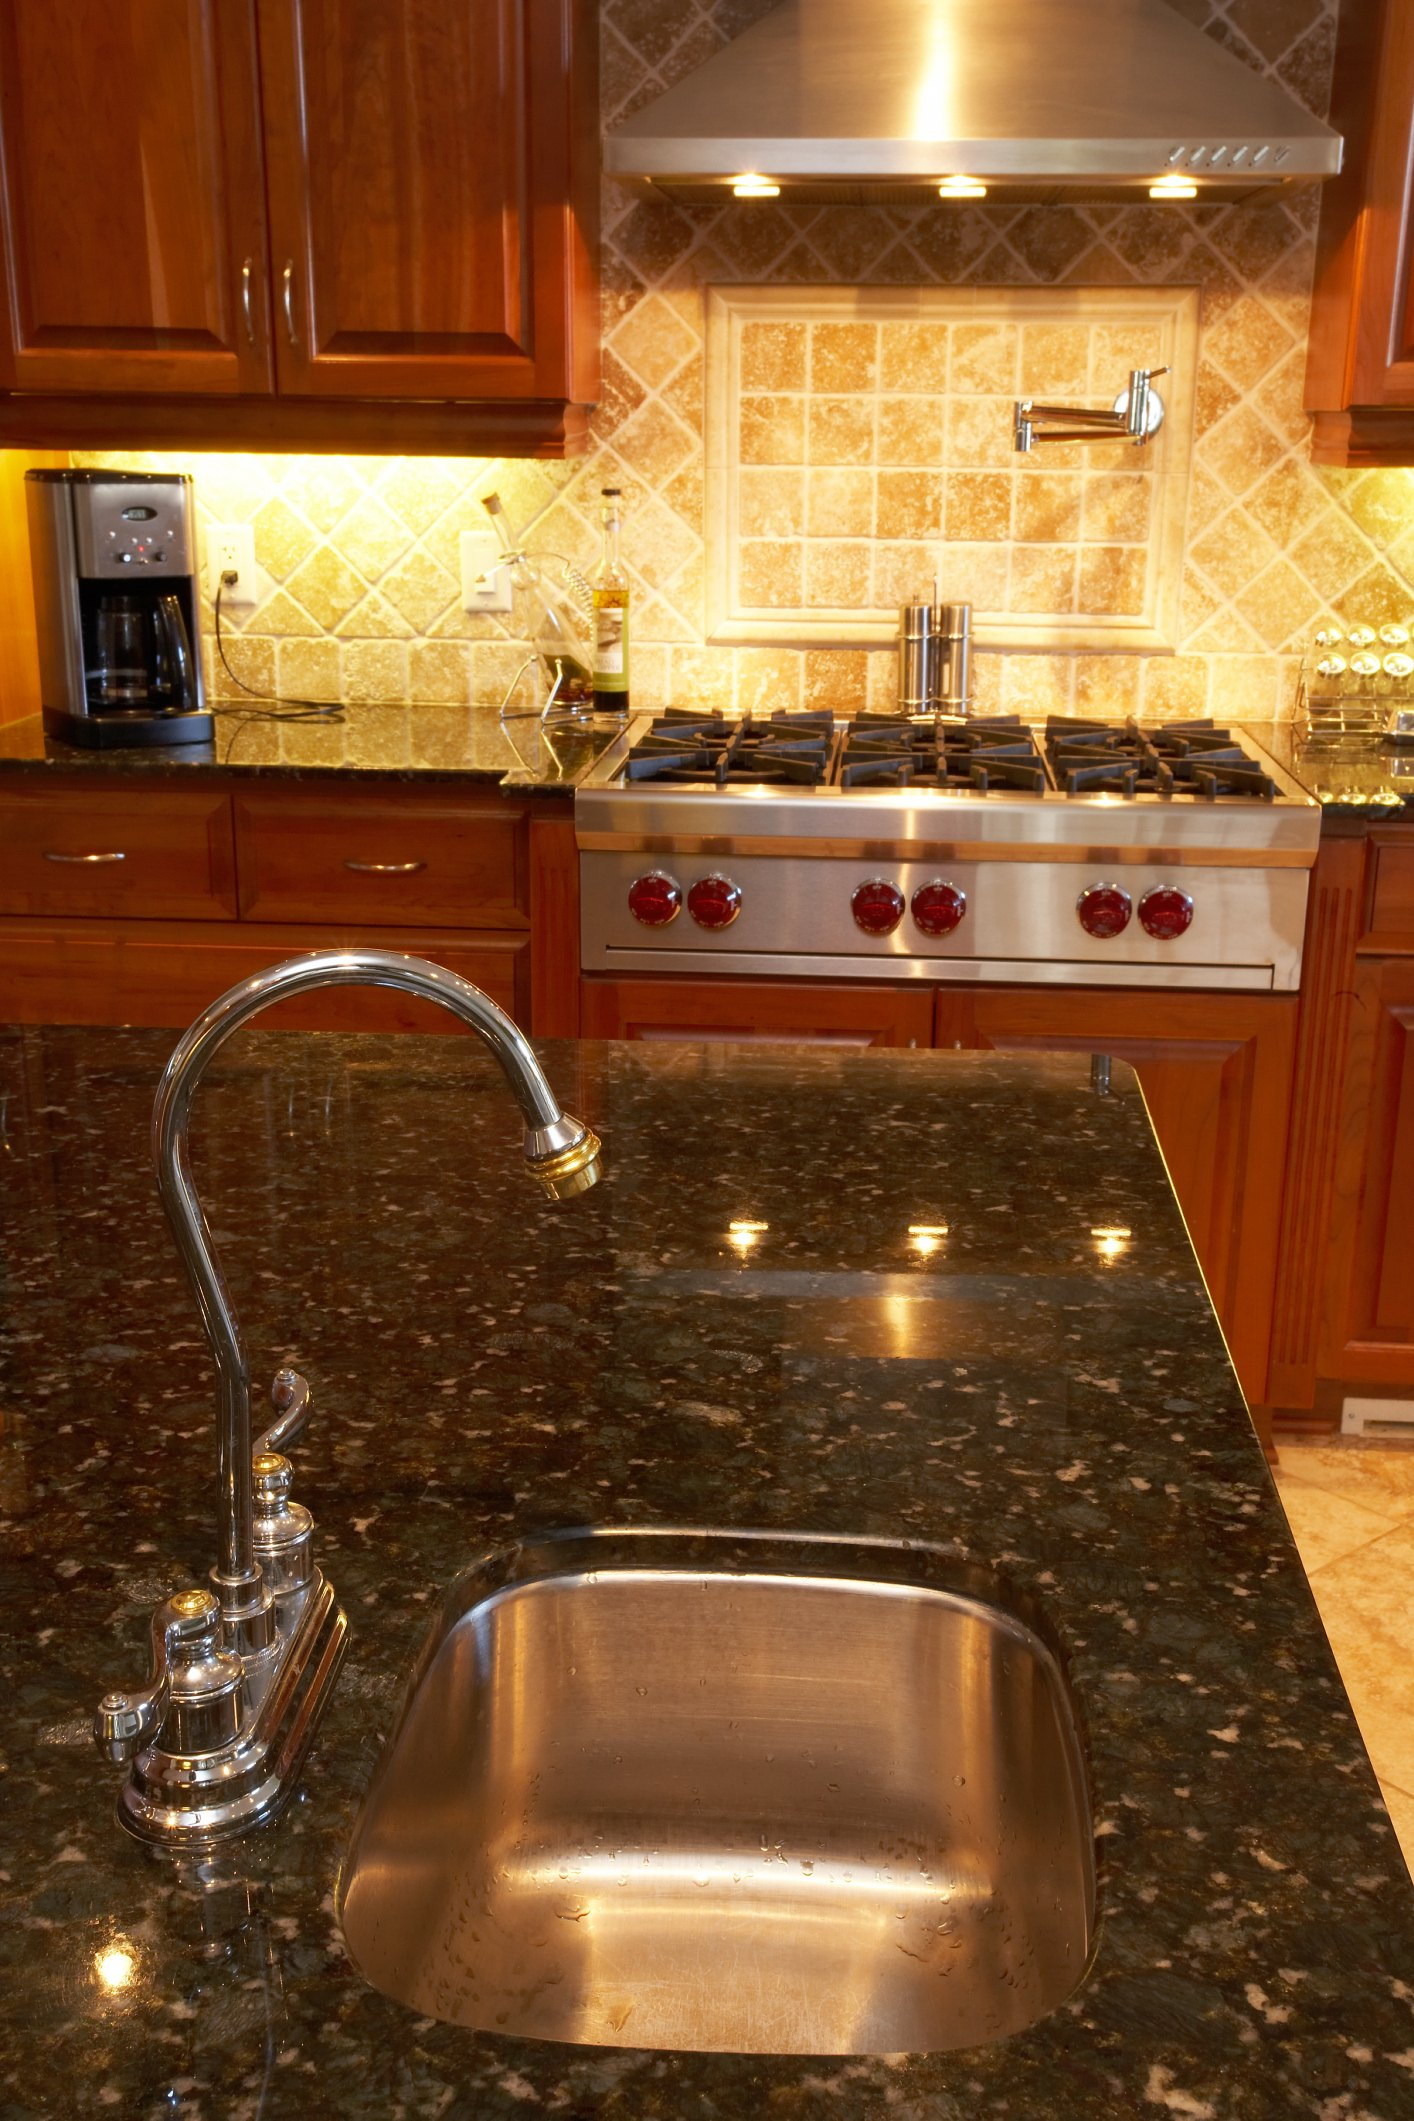 Good Choices For A Backsplash With An Uba Tuba Countertop